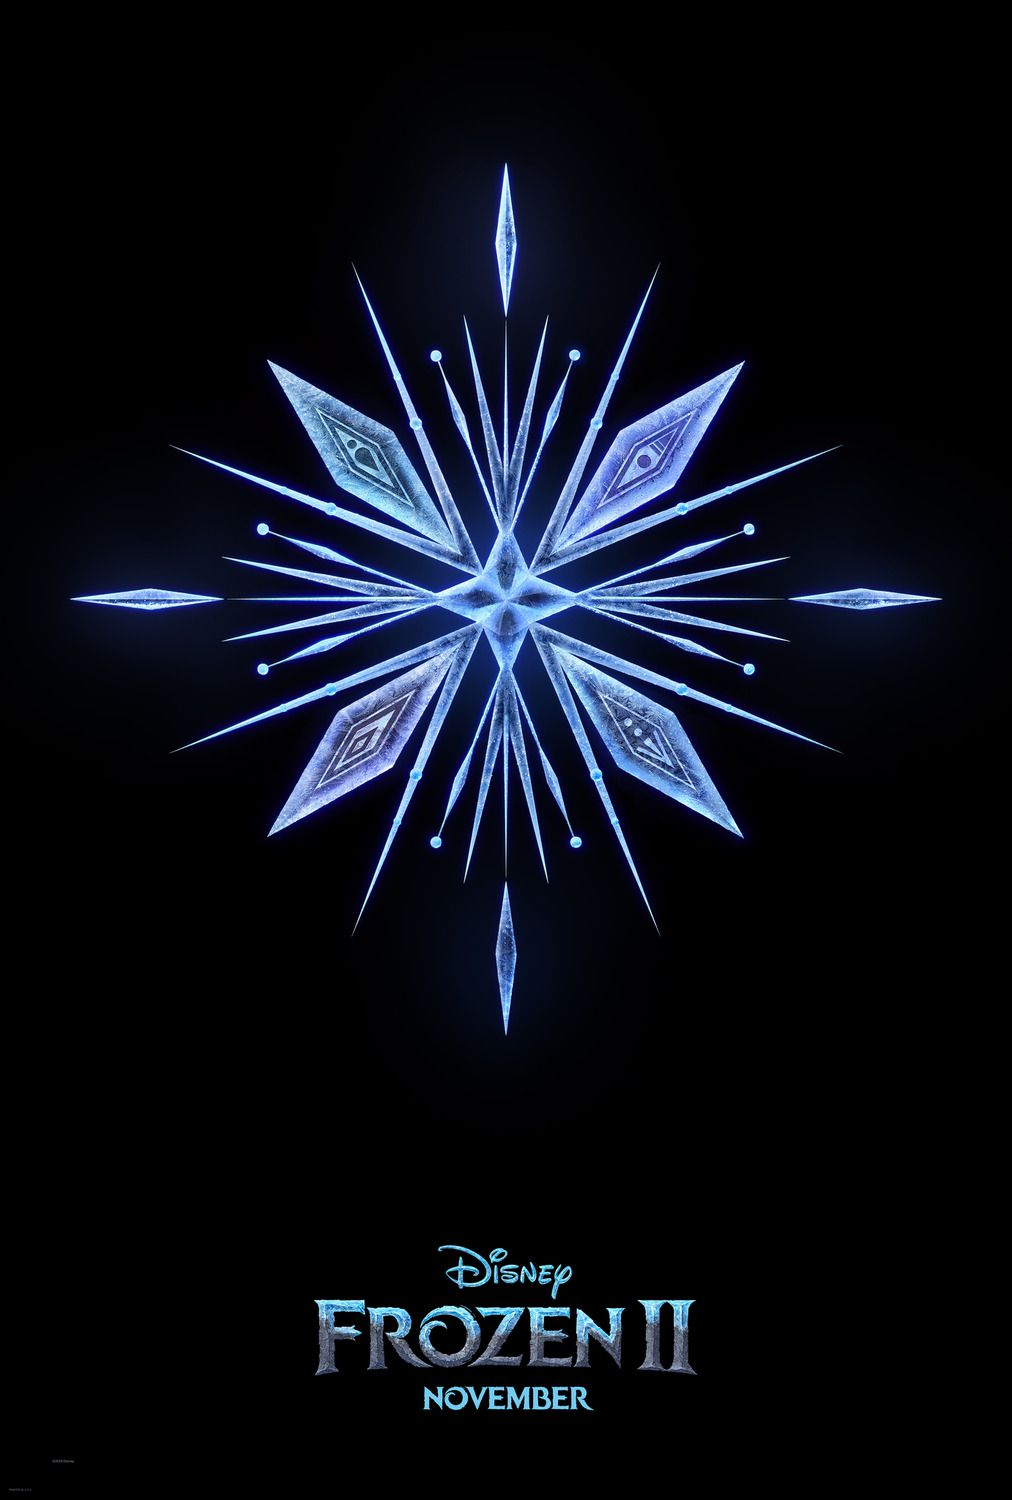 Frozen 2 - snow flake poster